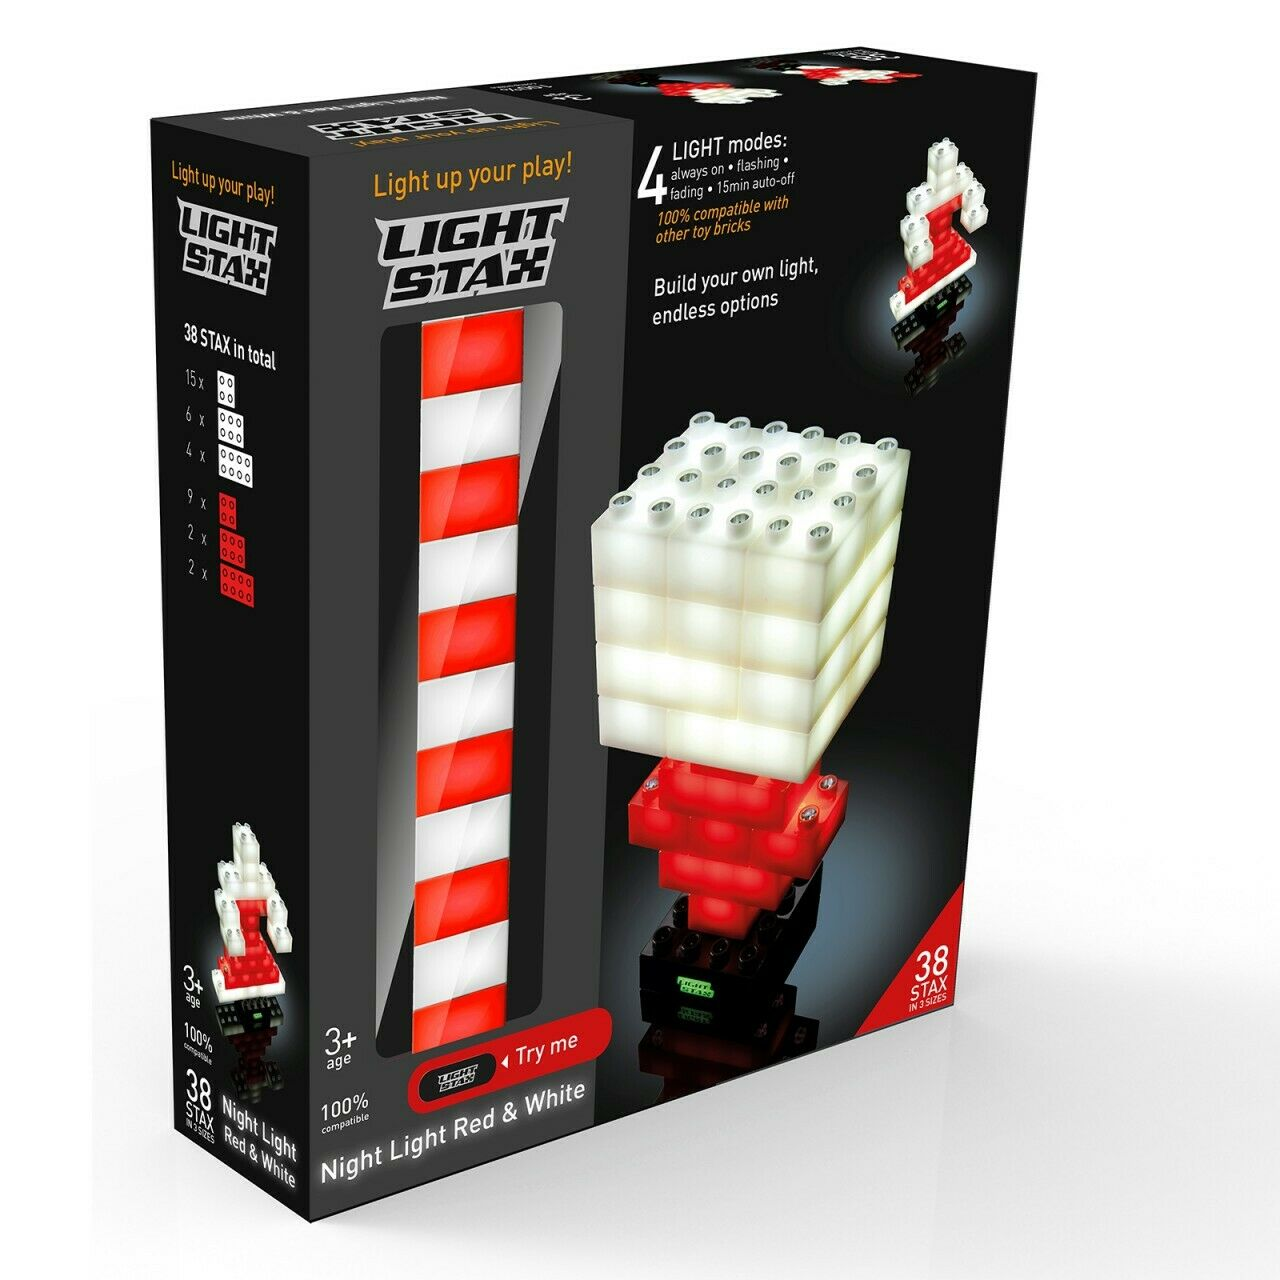 LIGHT LIGHT LIGHT STAX® Junior Night Light, Rot, Weiß, 38 LED Bausteine  | Schönes Aussehen